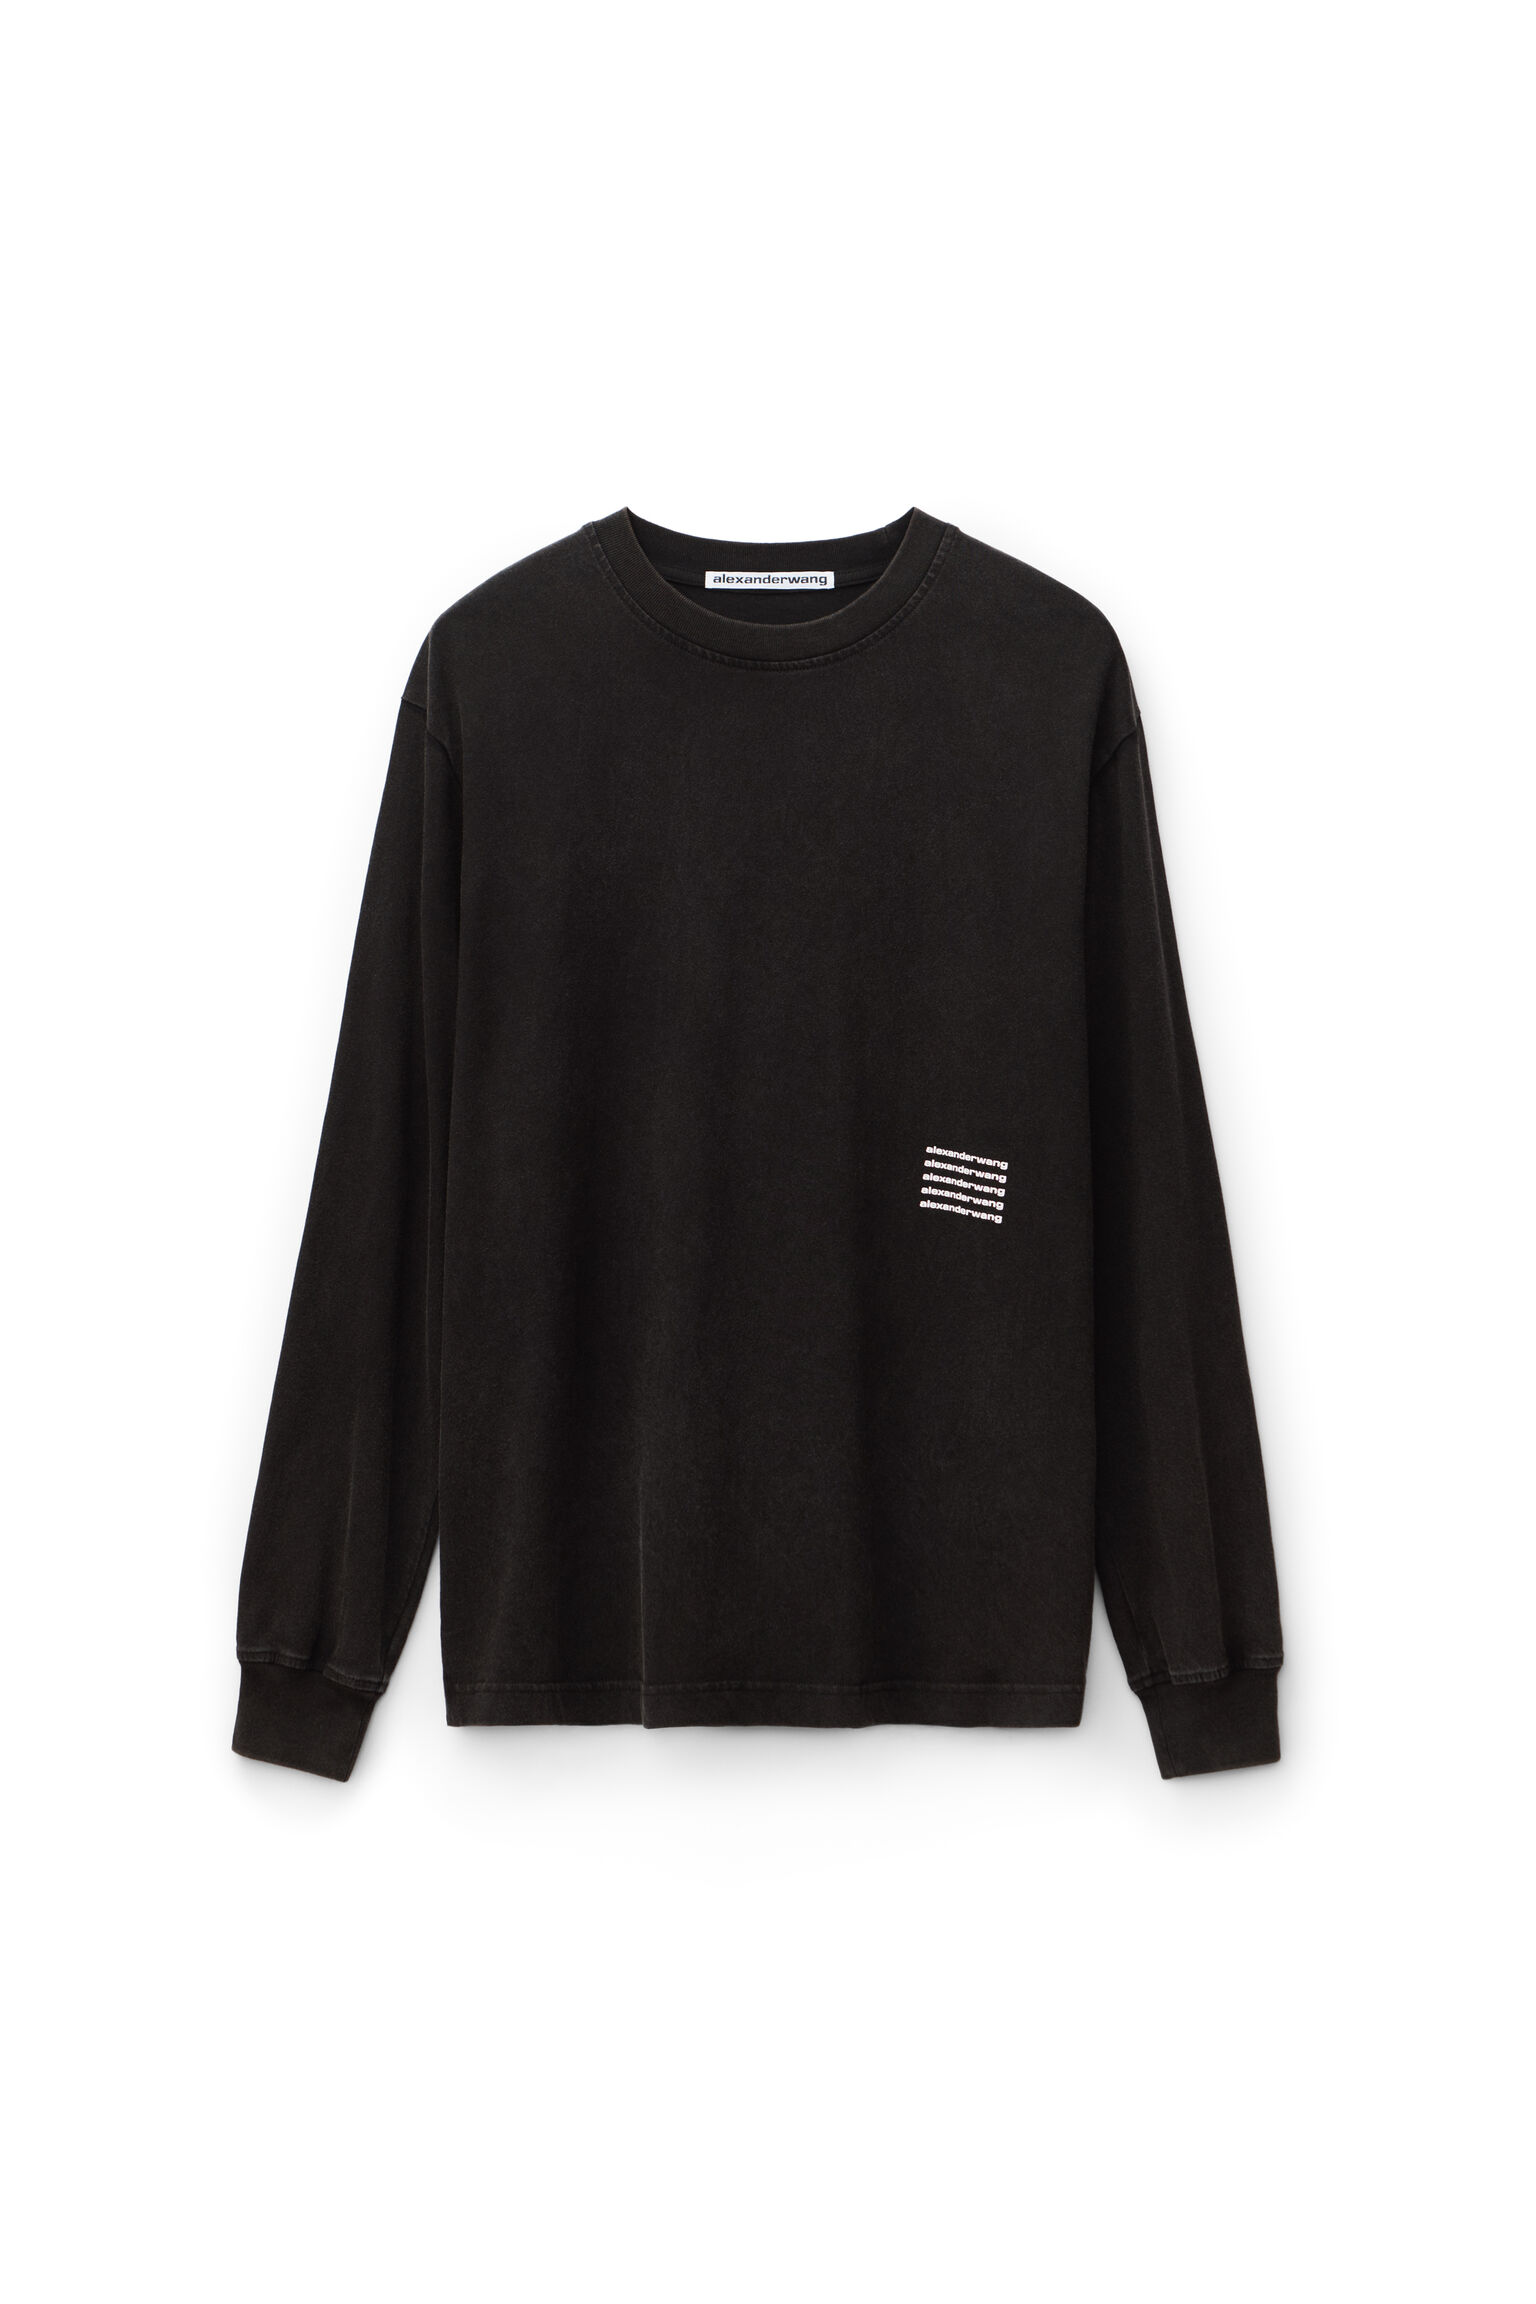 Alexanderwang Acid Wash Long Sleeve T Shirt